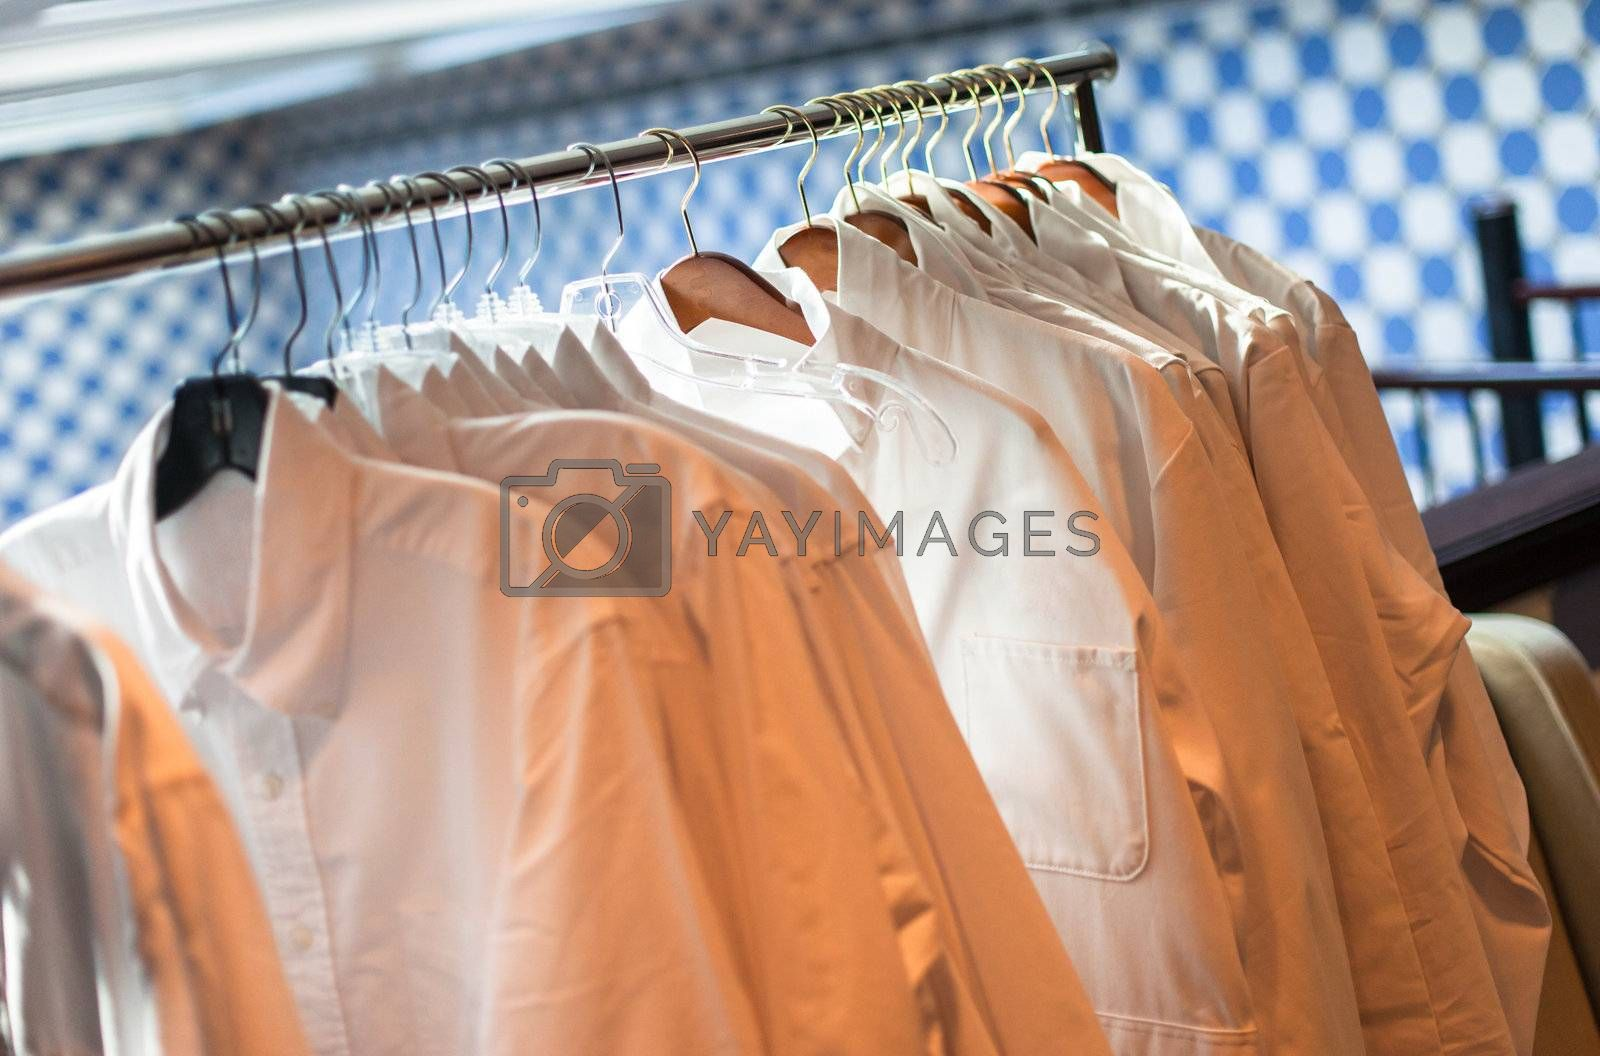 White men's shirts hanging on a rack indoors